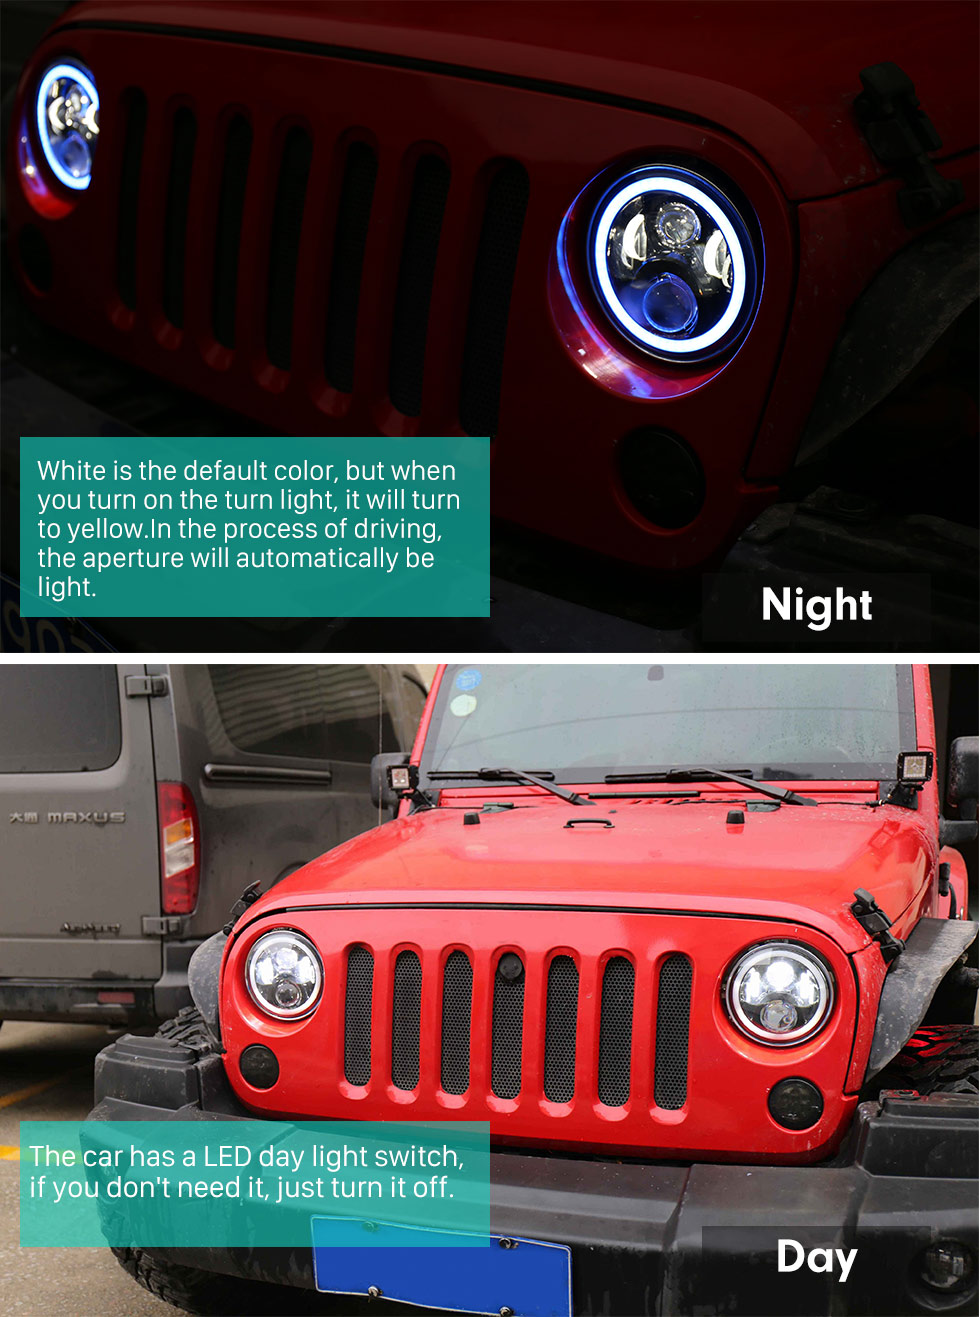 Seicane 7 inch Car Front LED Halo Headlight Refit Daylight Round Lamps for 1996-2017 Jeep Wrangler 2PCs